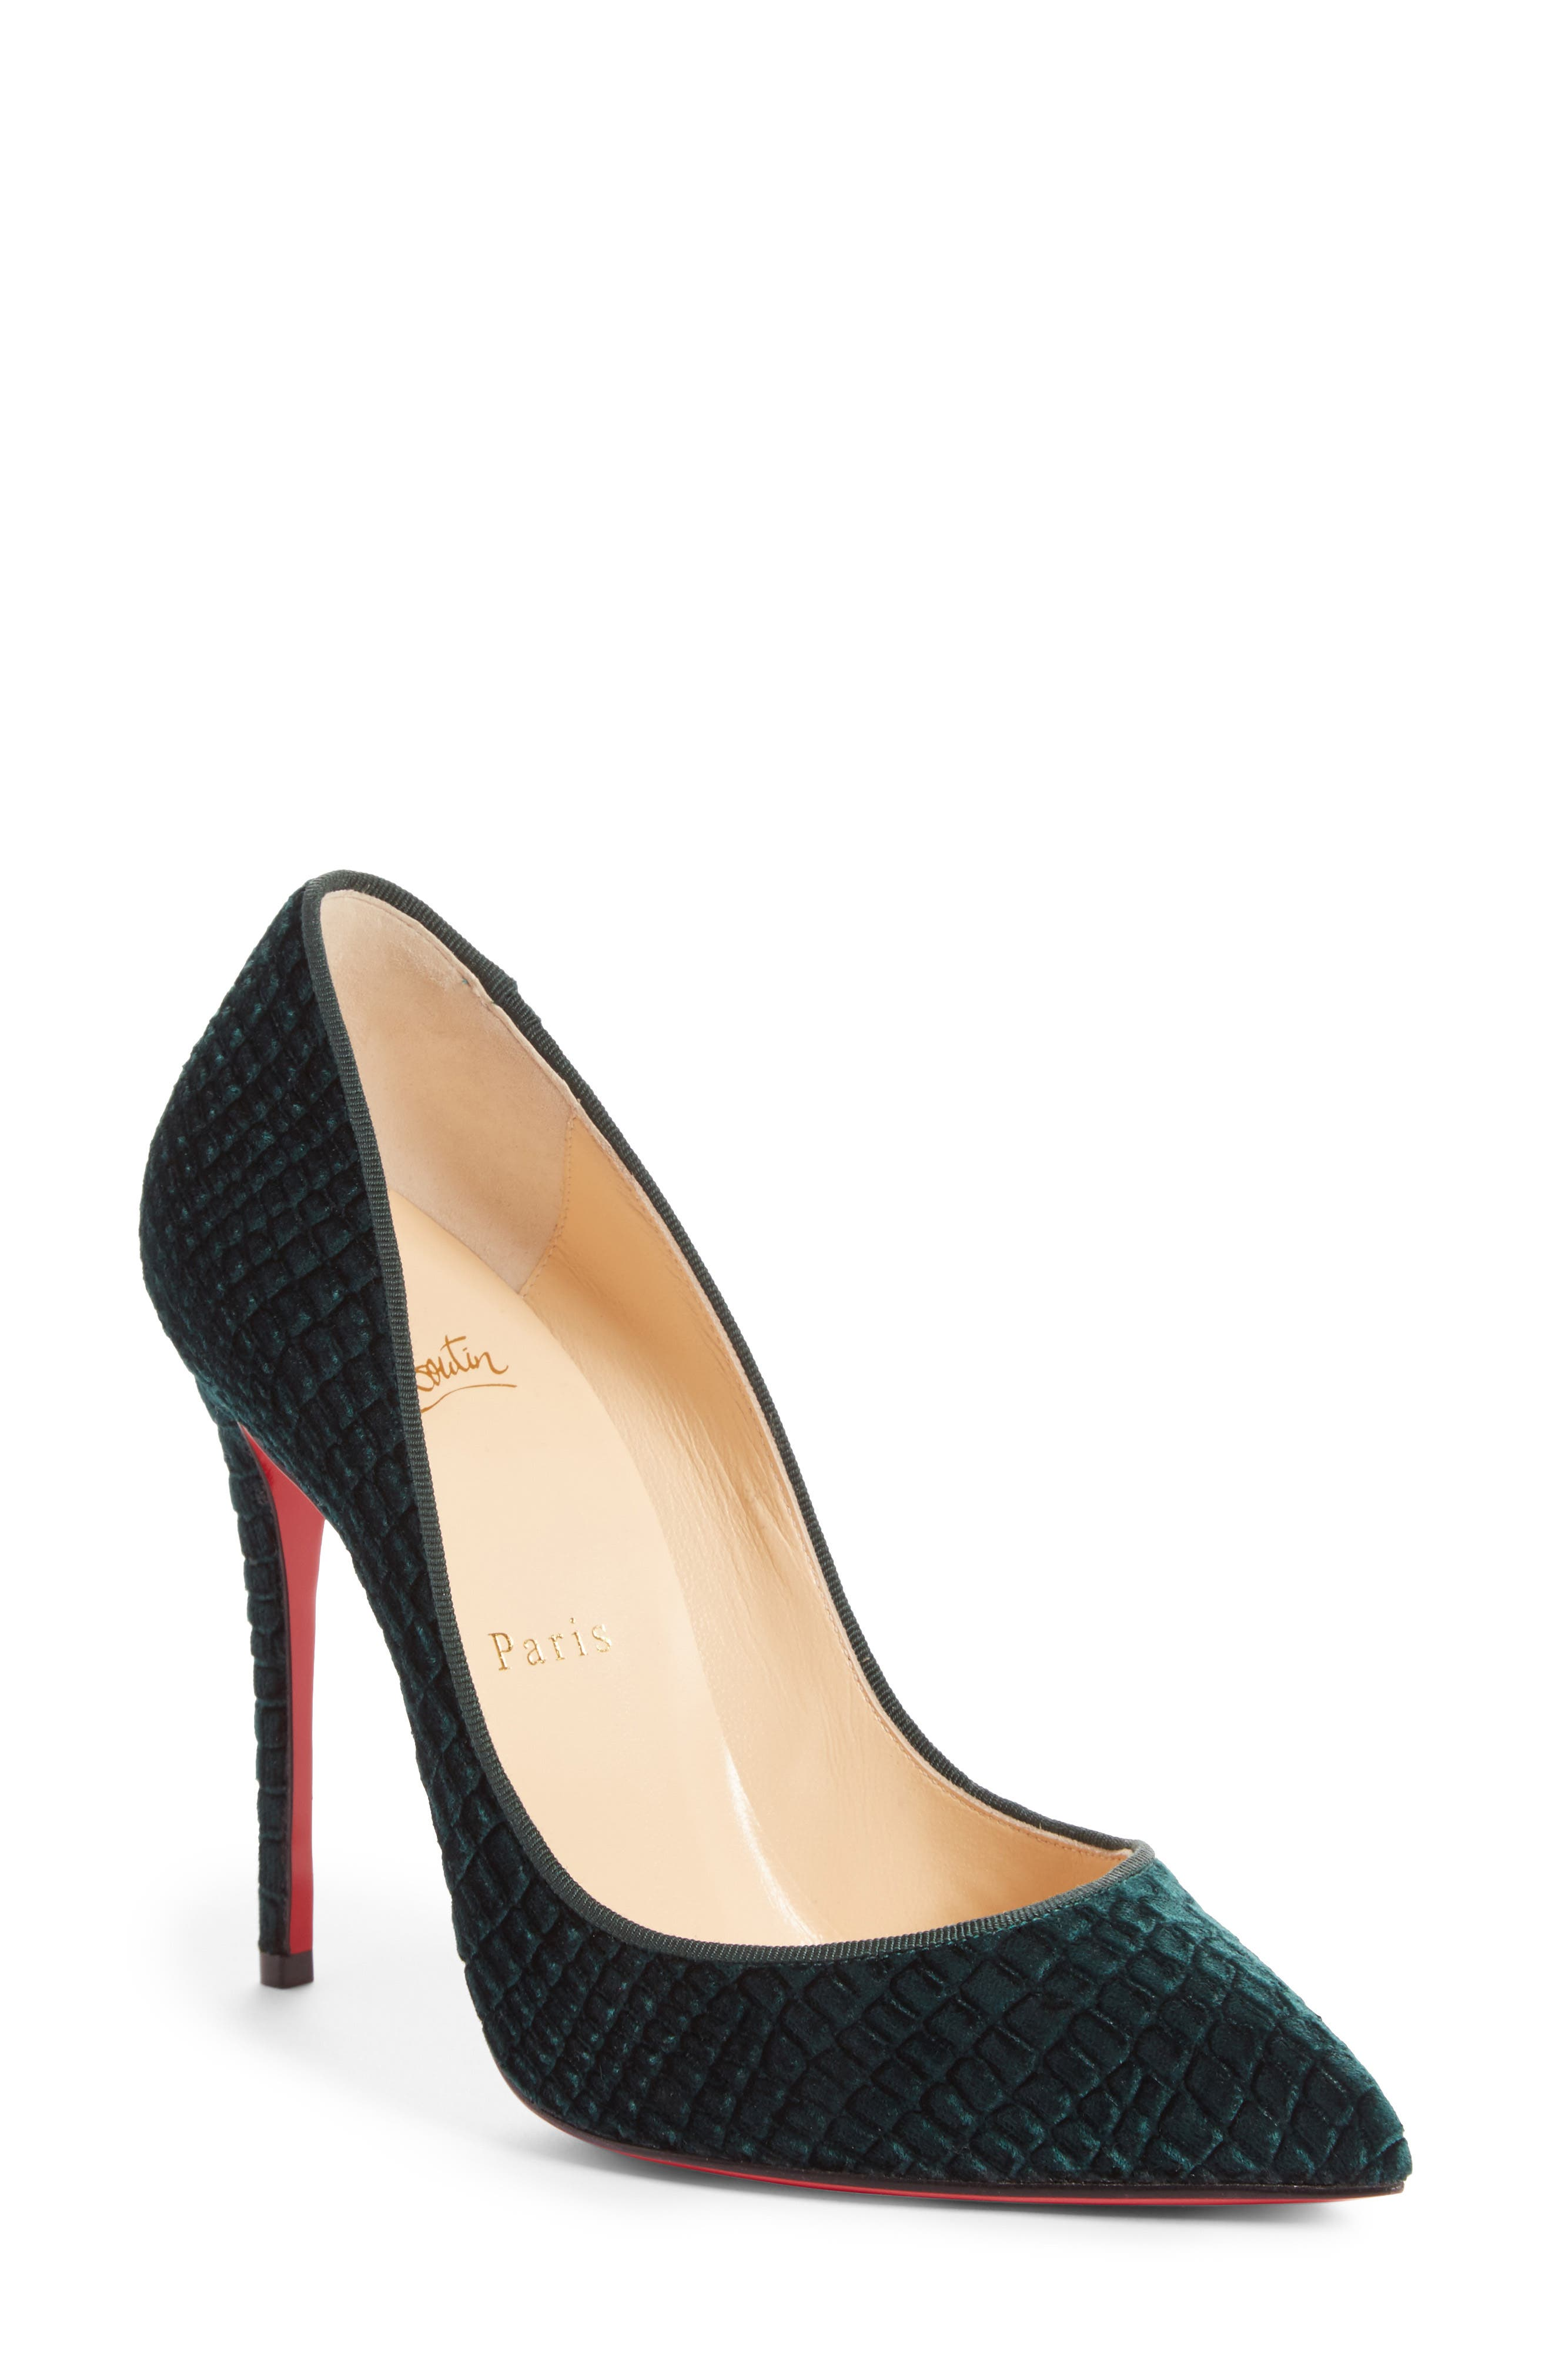 Alternate Image 1 Selected - Christian Louboutin Pigalle Follies Pointy Toe Pump (Women)